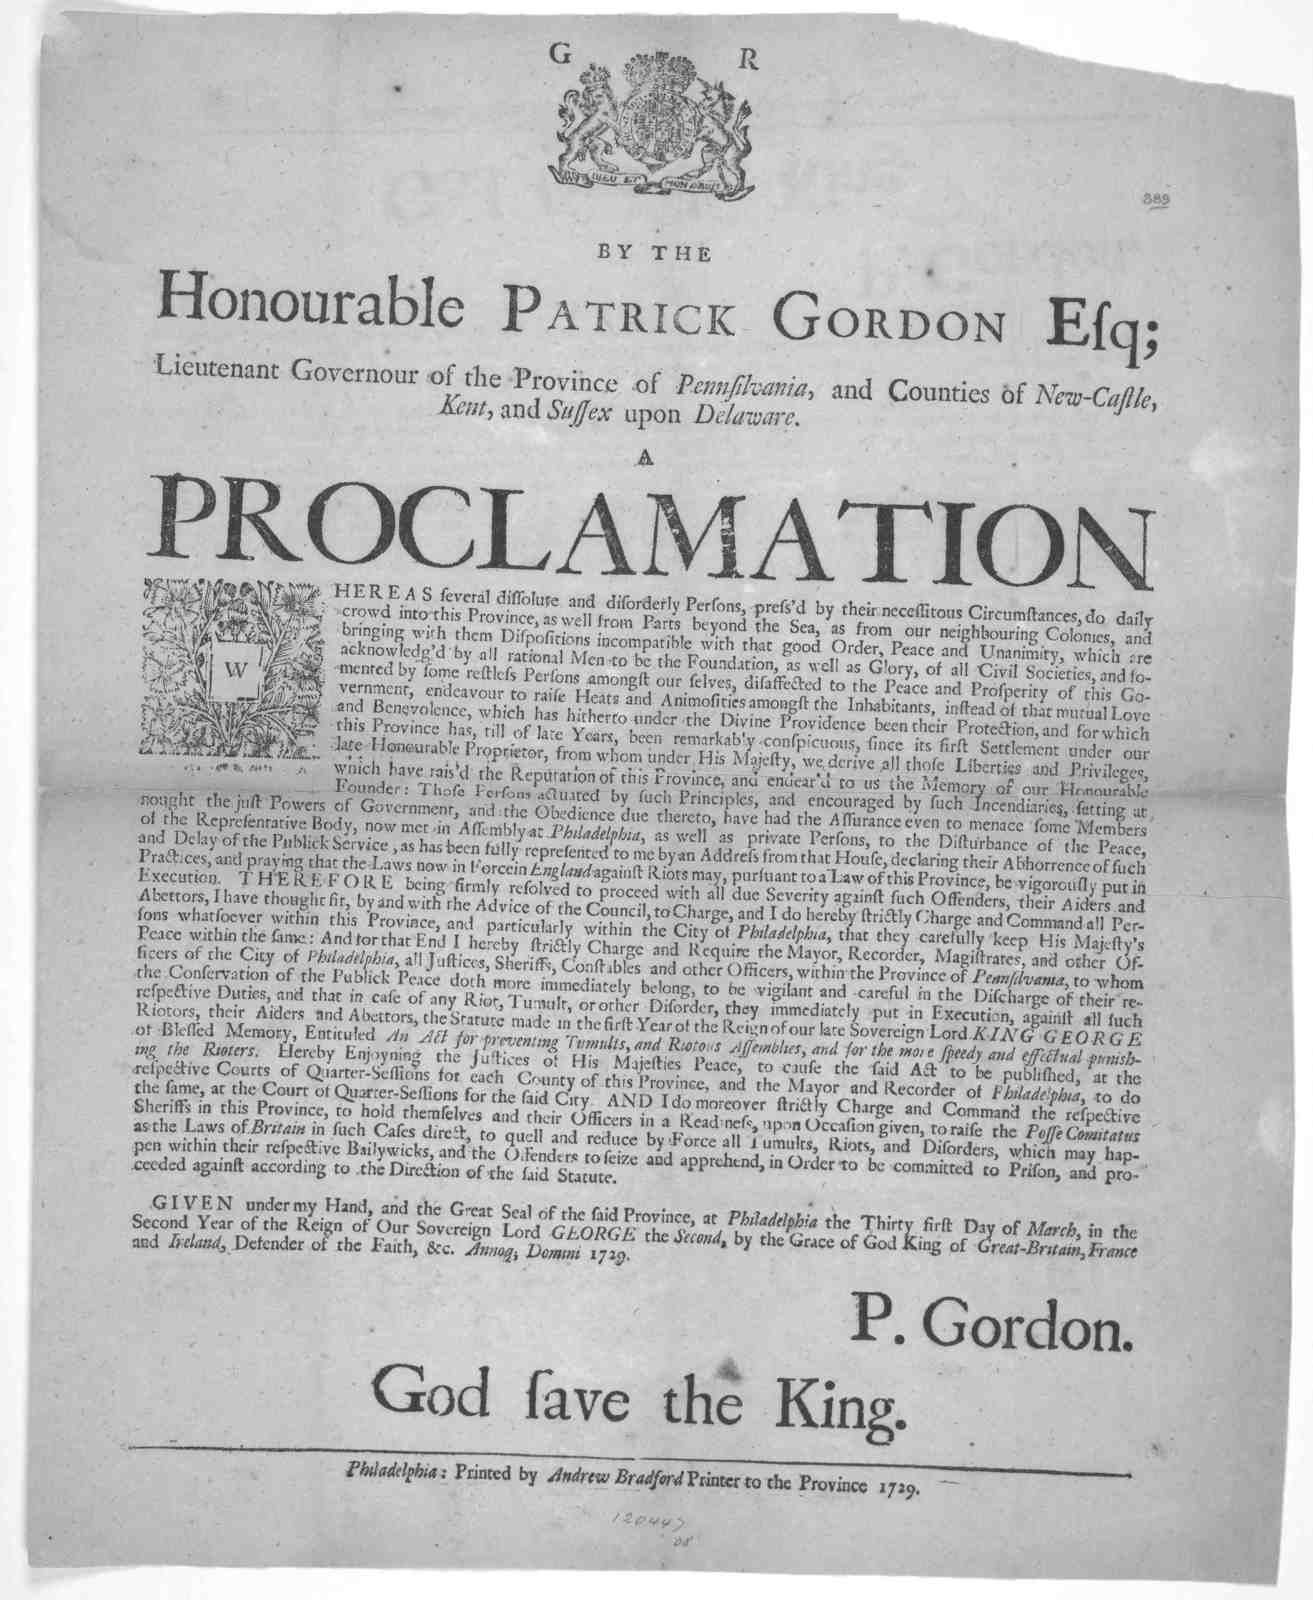 [Arms] By the Honourable Patrick Gordon, Esq; Lieutenant Governour of the Province of Pennsilvania, and Counties of New-Castle, Kent, and Sussex upon Delaware, A proclamation [to quell and reduce by force all tumults, riots, and disorders] Given